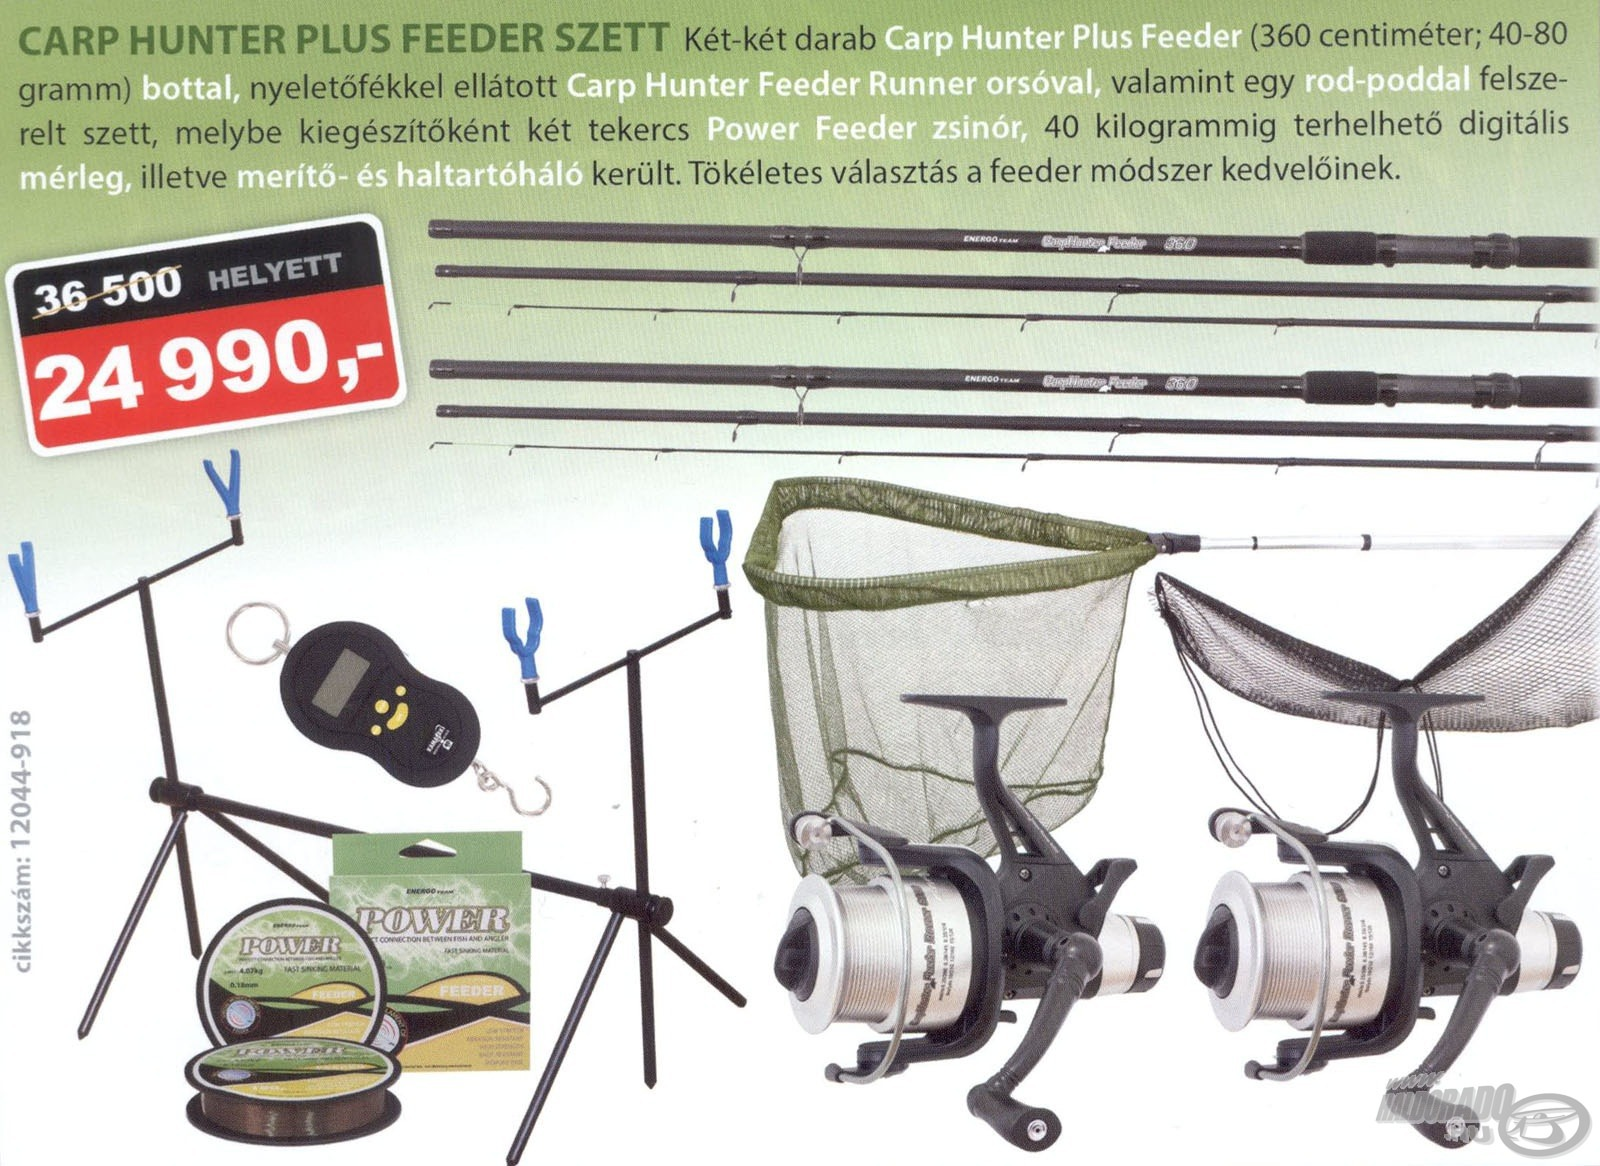 ENERGOTEAM, Carp, Hunter, Plus, Feeder, szett, 36500, helyett, 24990Ft